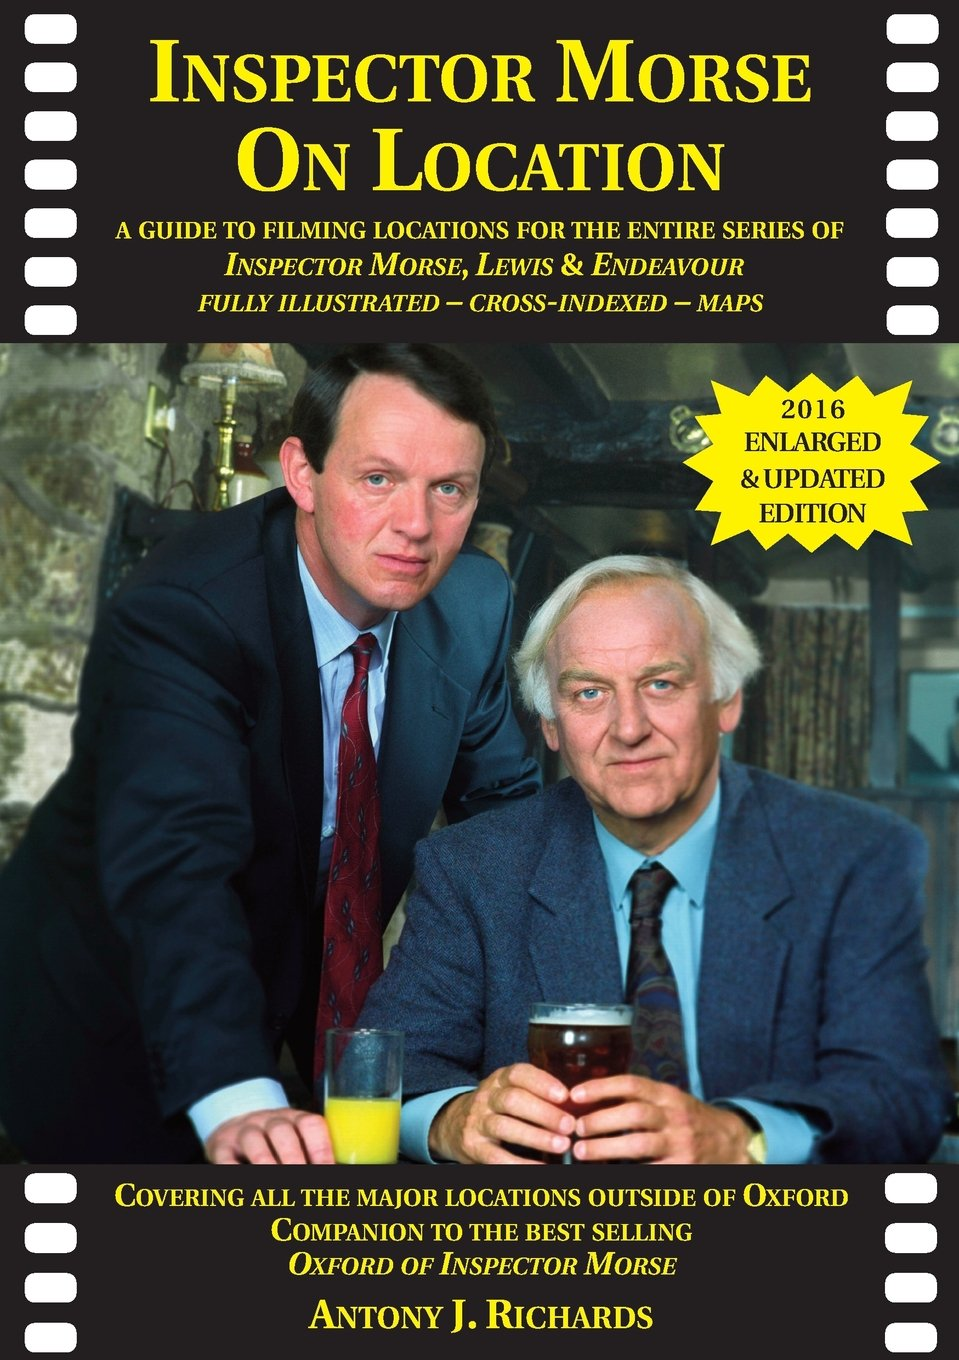 The oxford of inspector morse: 25th anniversary edition: the.